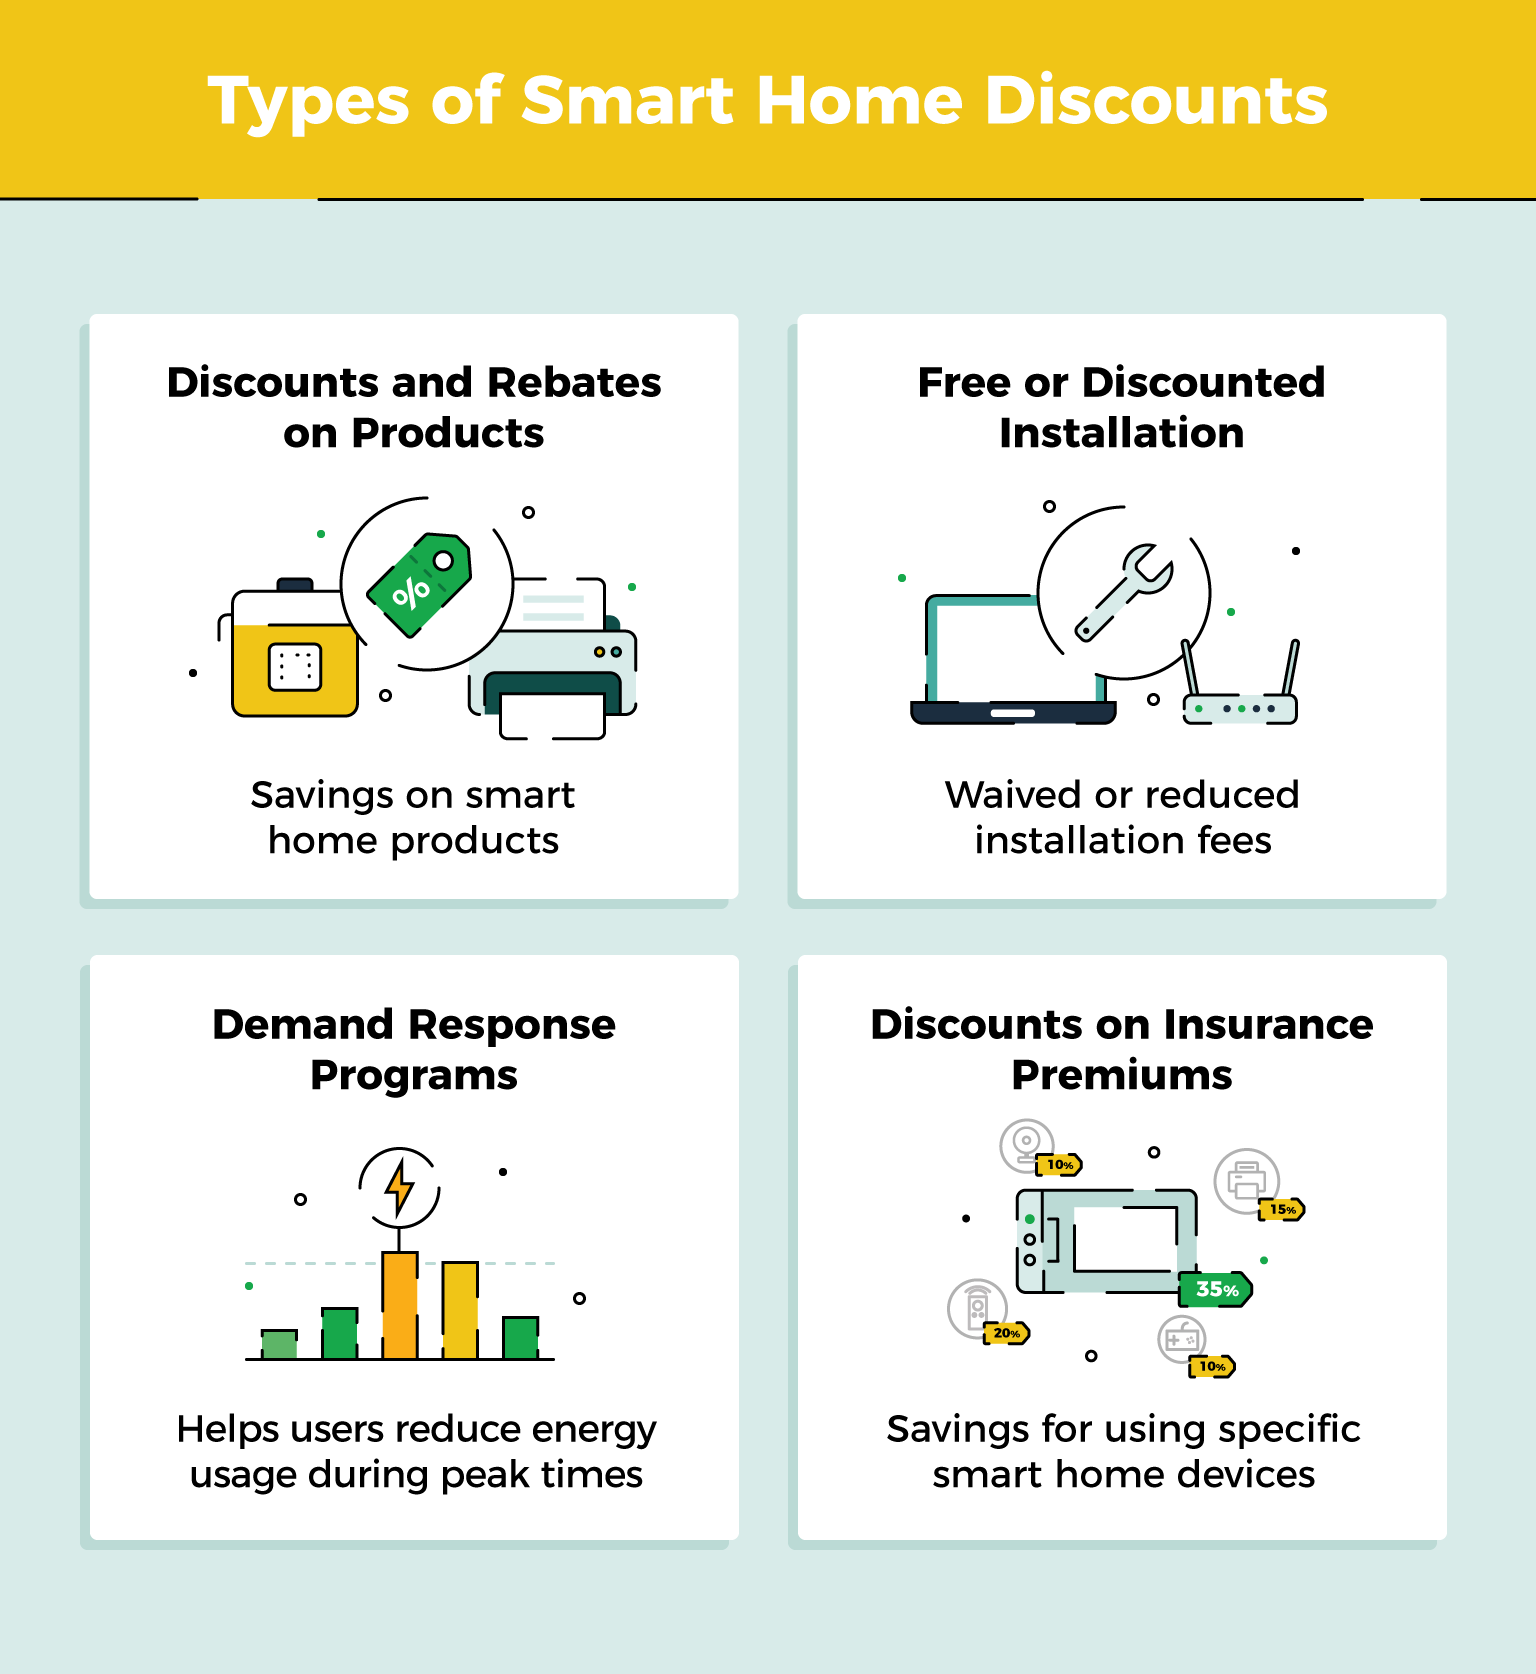 types of smart home discounts including rebates, free installation, demand response, and insurance premiums